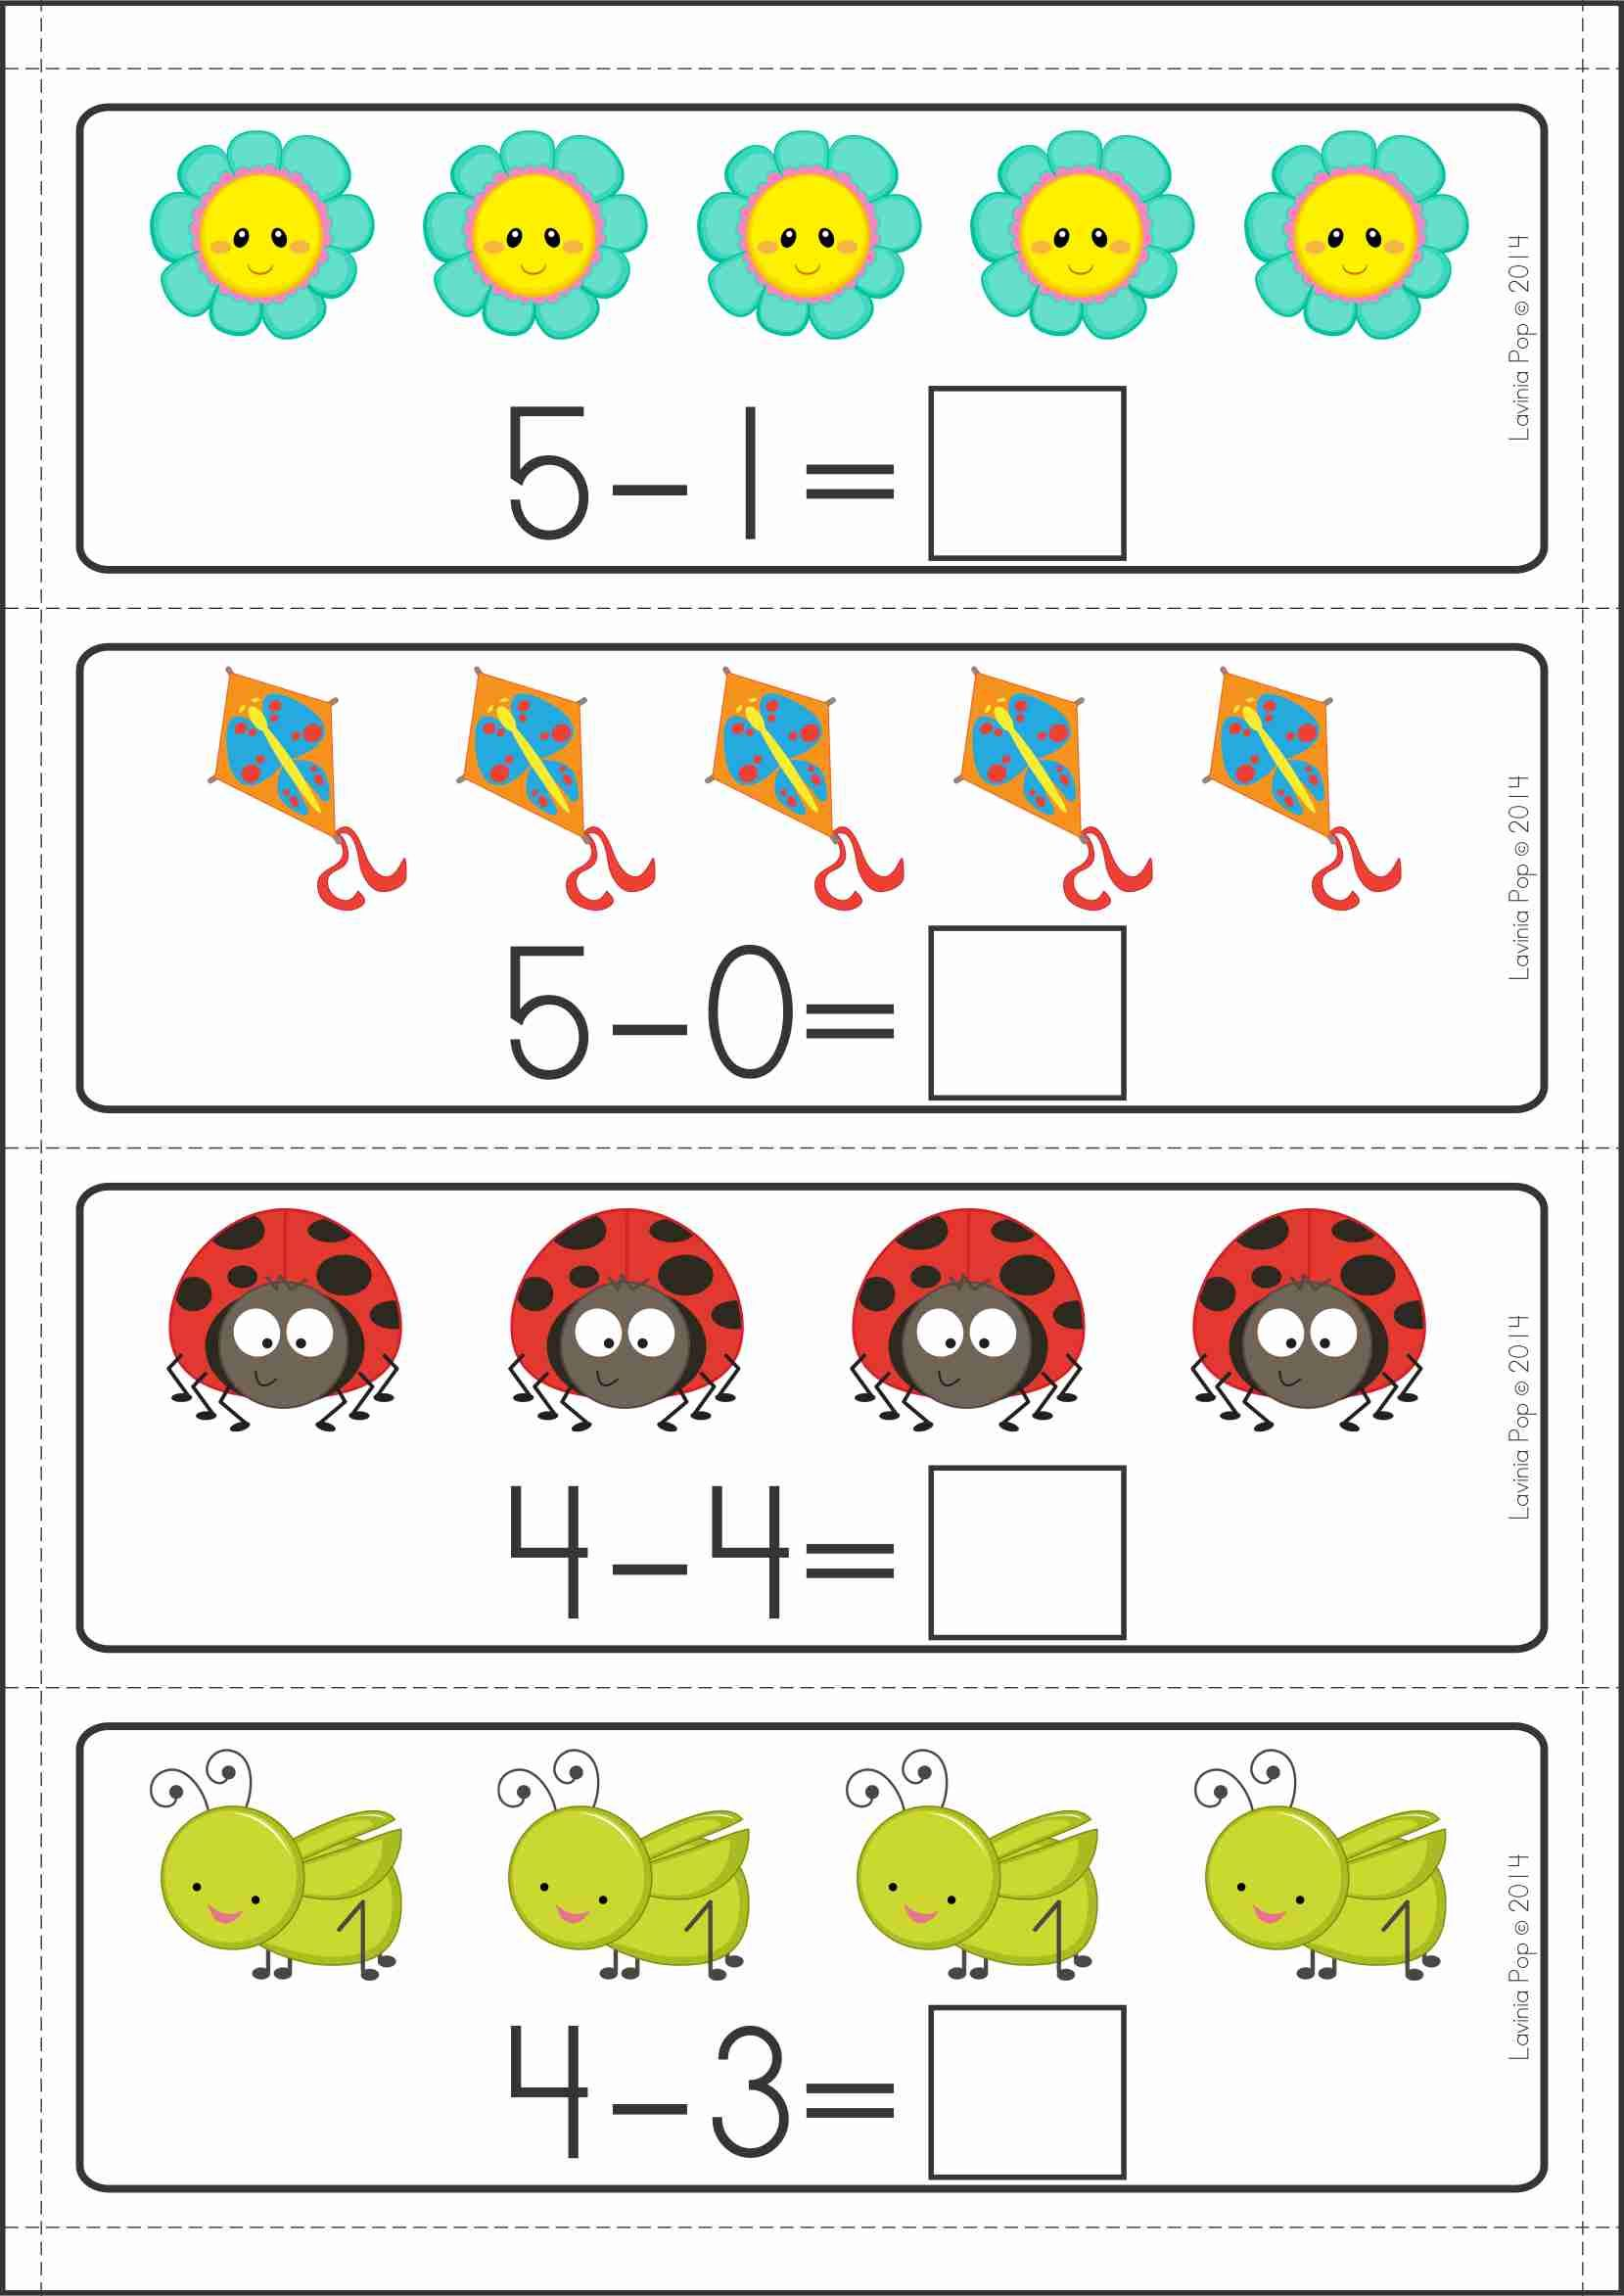 kindergarten math centers spring 137 pages in total a page from the unit subtraction cards. Black Bedroom Furniture Sets. Home Design Ideas